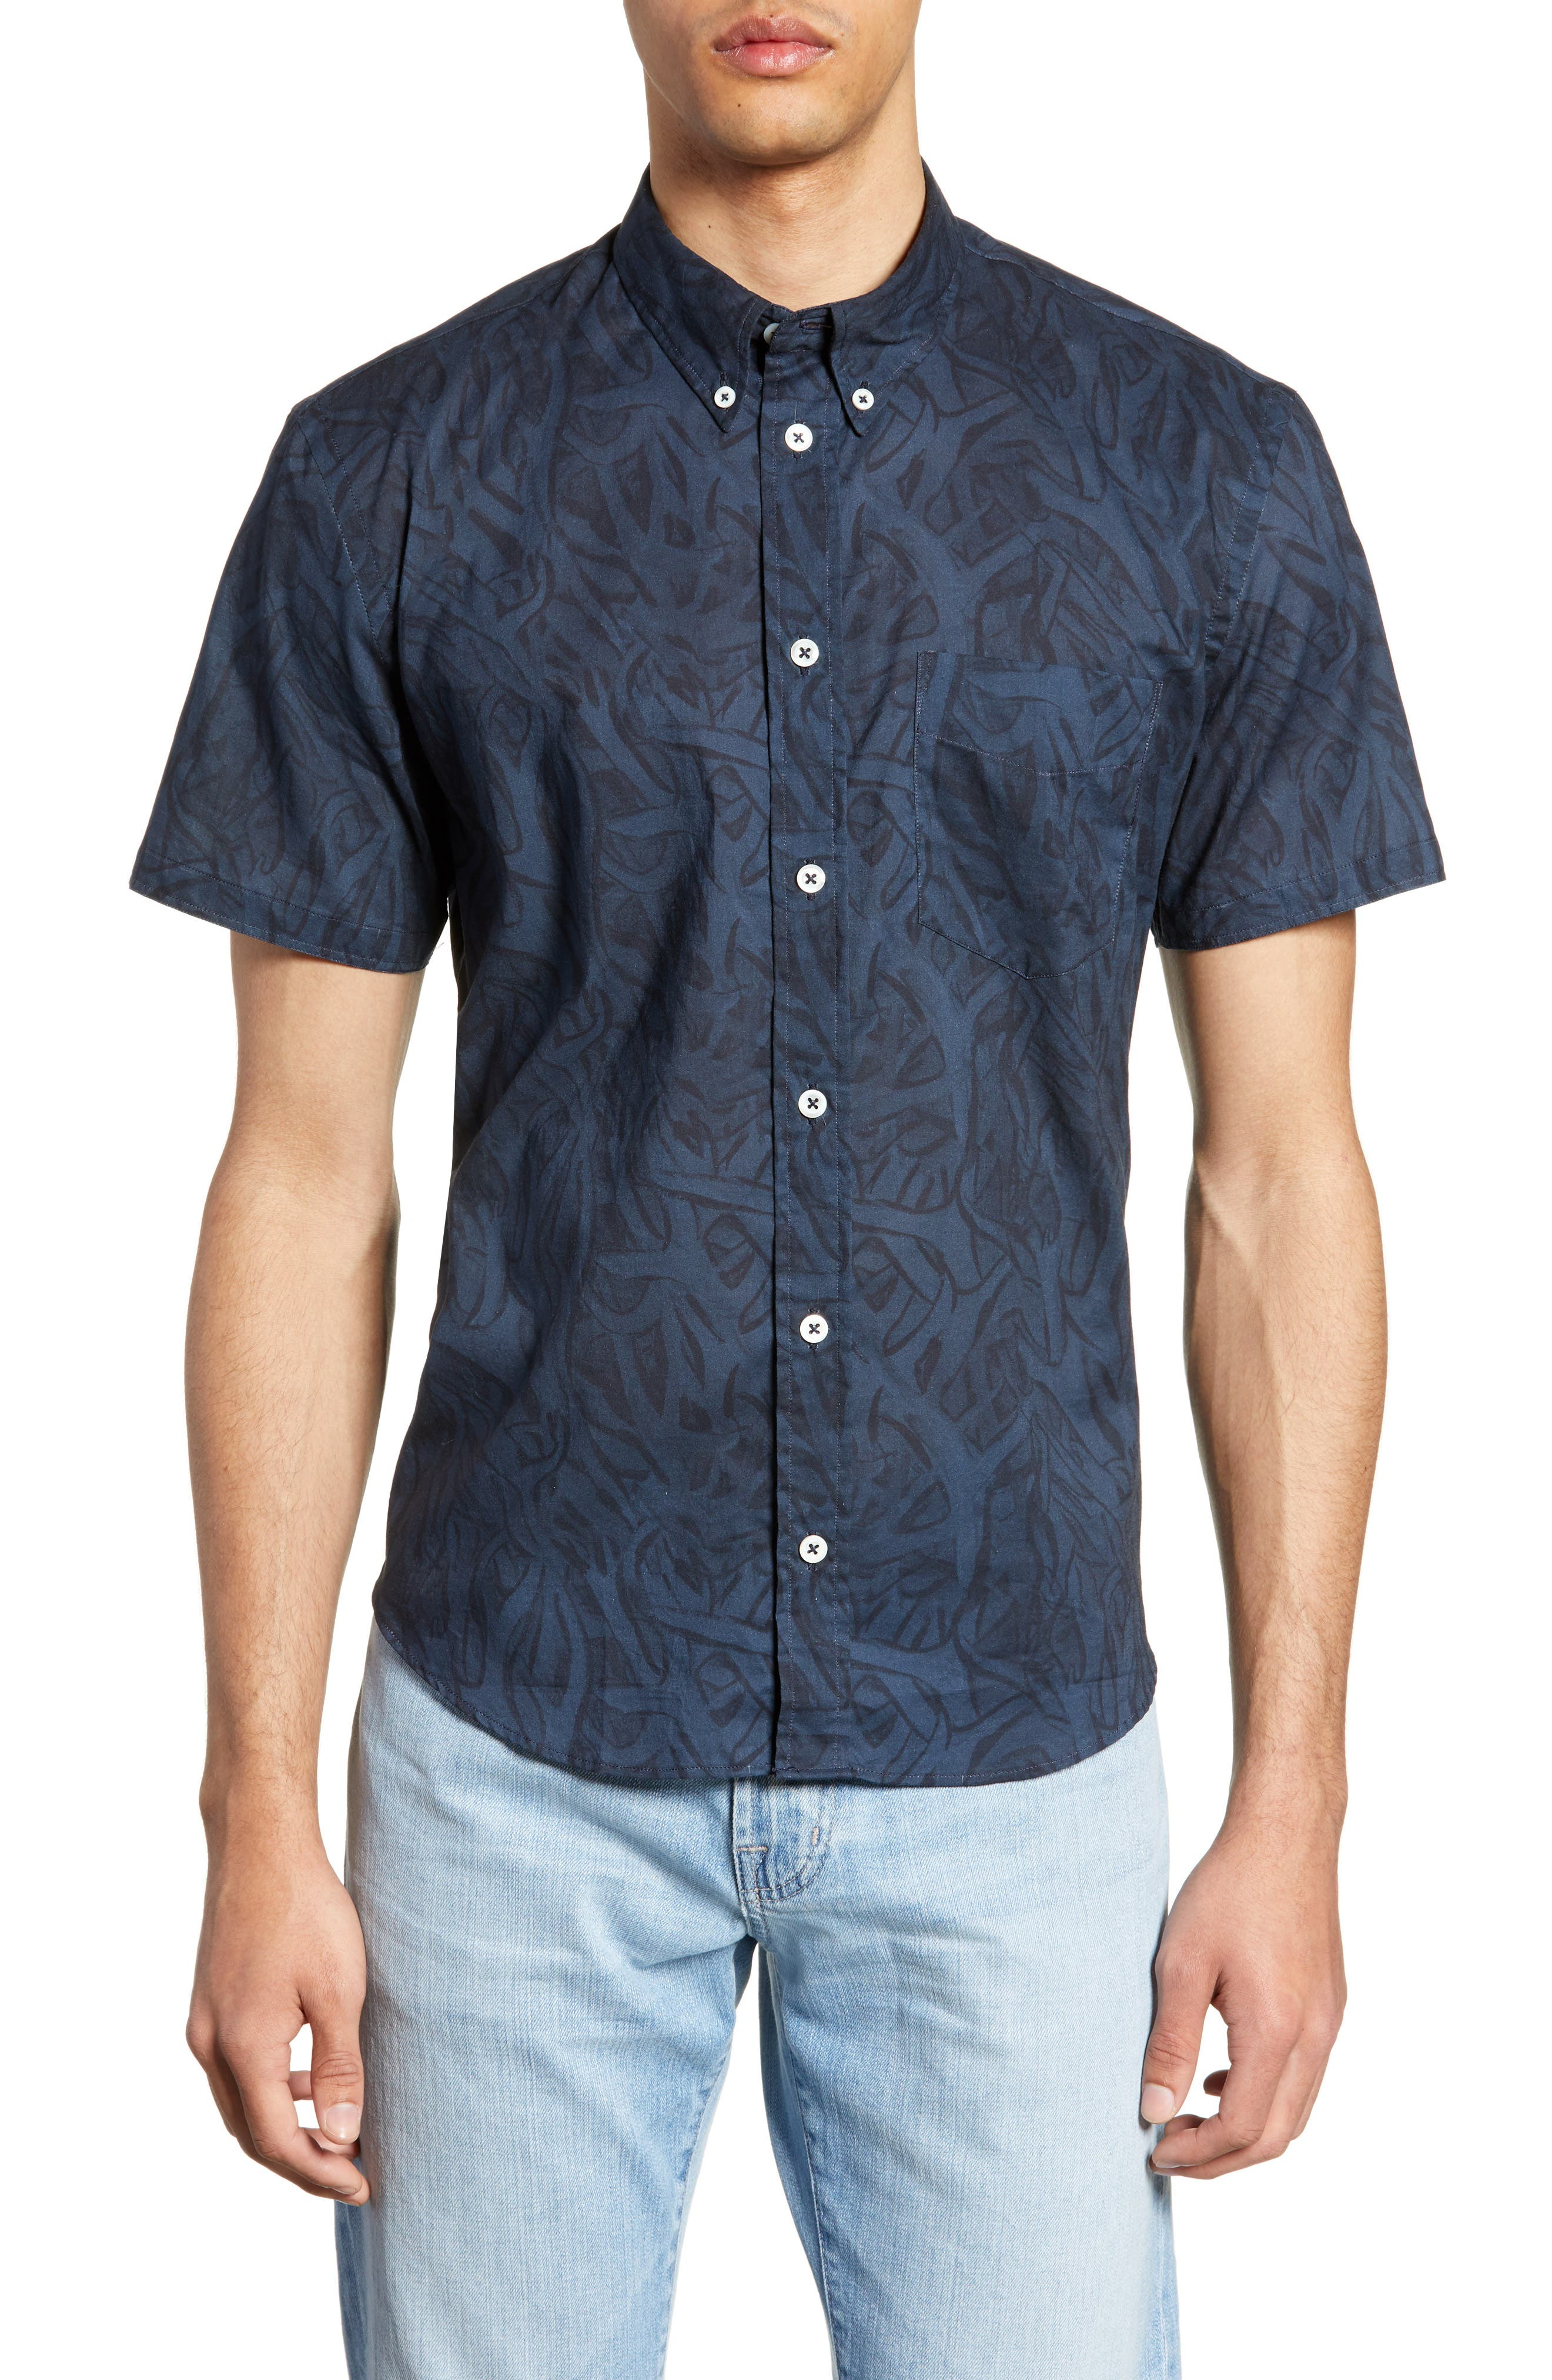 Kirby Antlers Slim Fit Woven Shirt, Main, color, BLUE/ NAVY